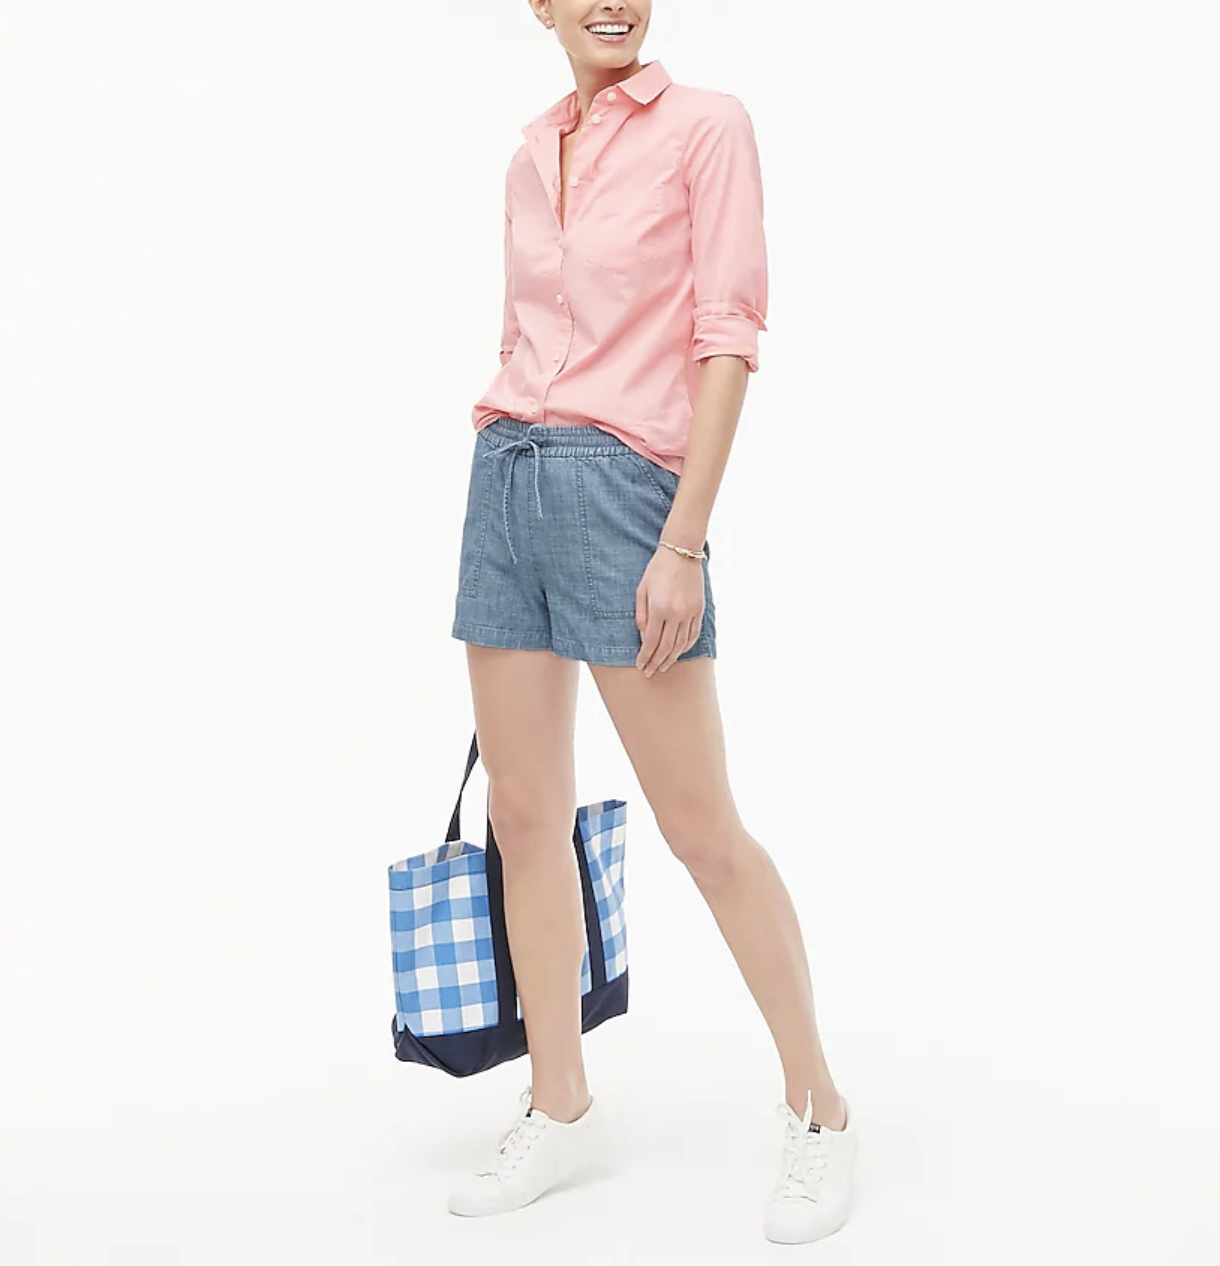 A model wears chambray drawstring short with a pink shirt and white canvas sneakers